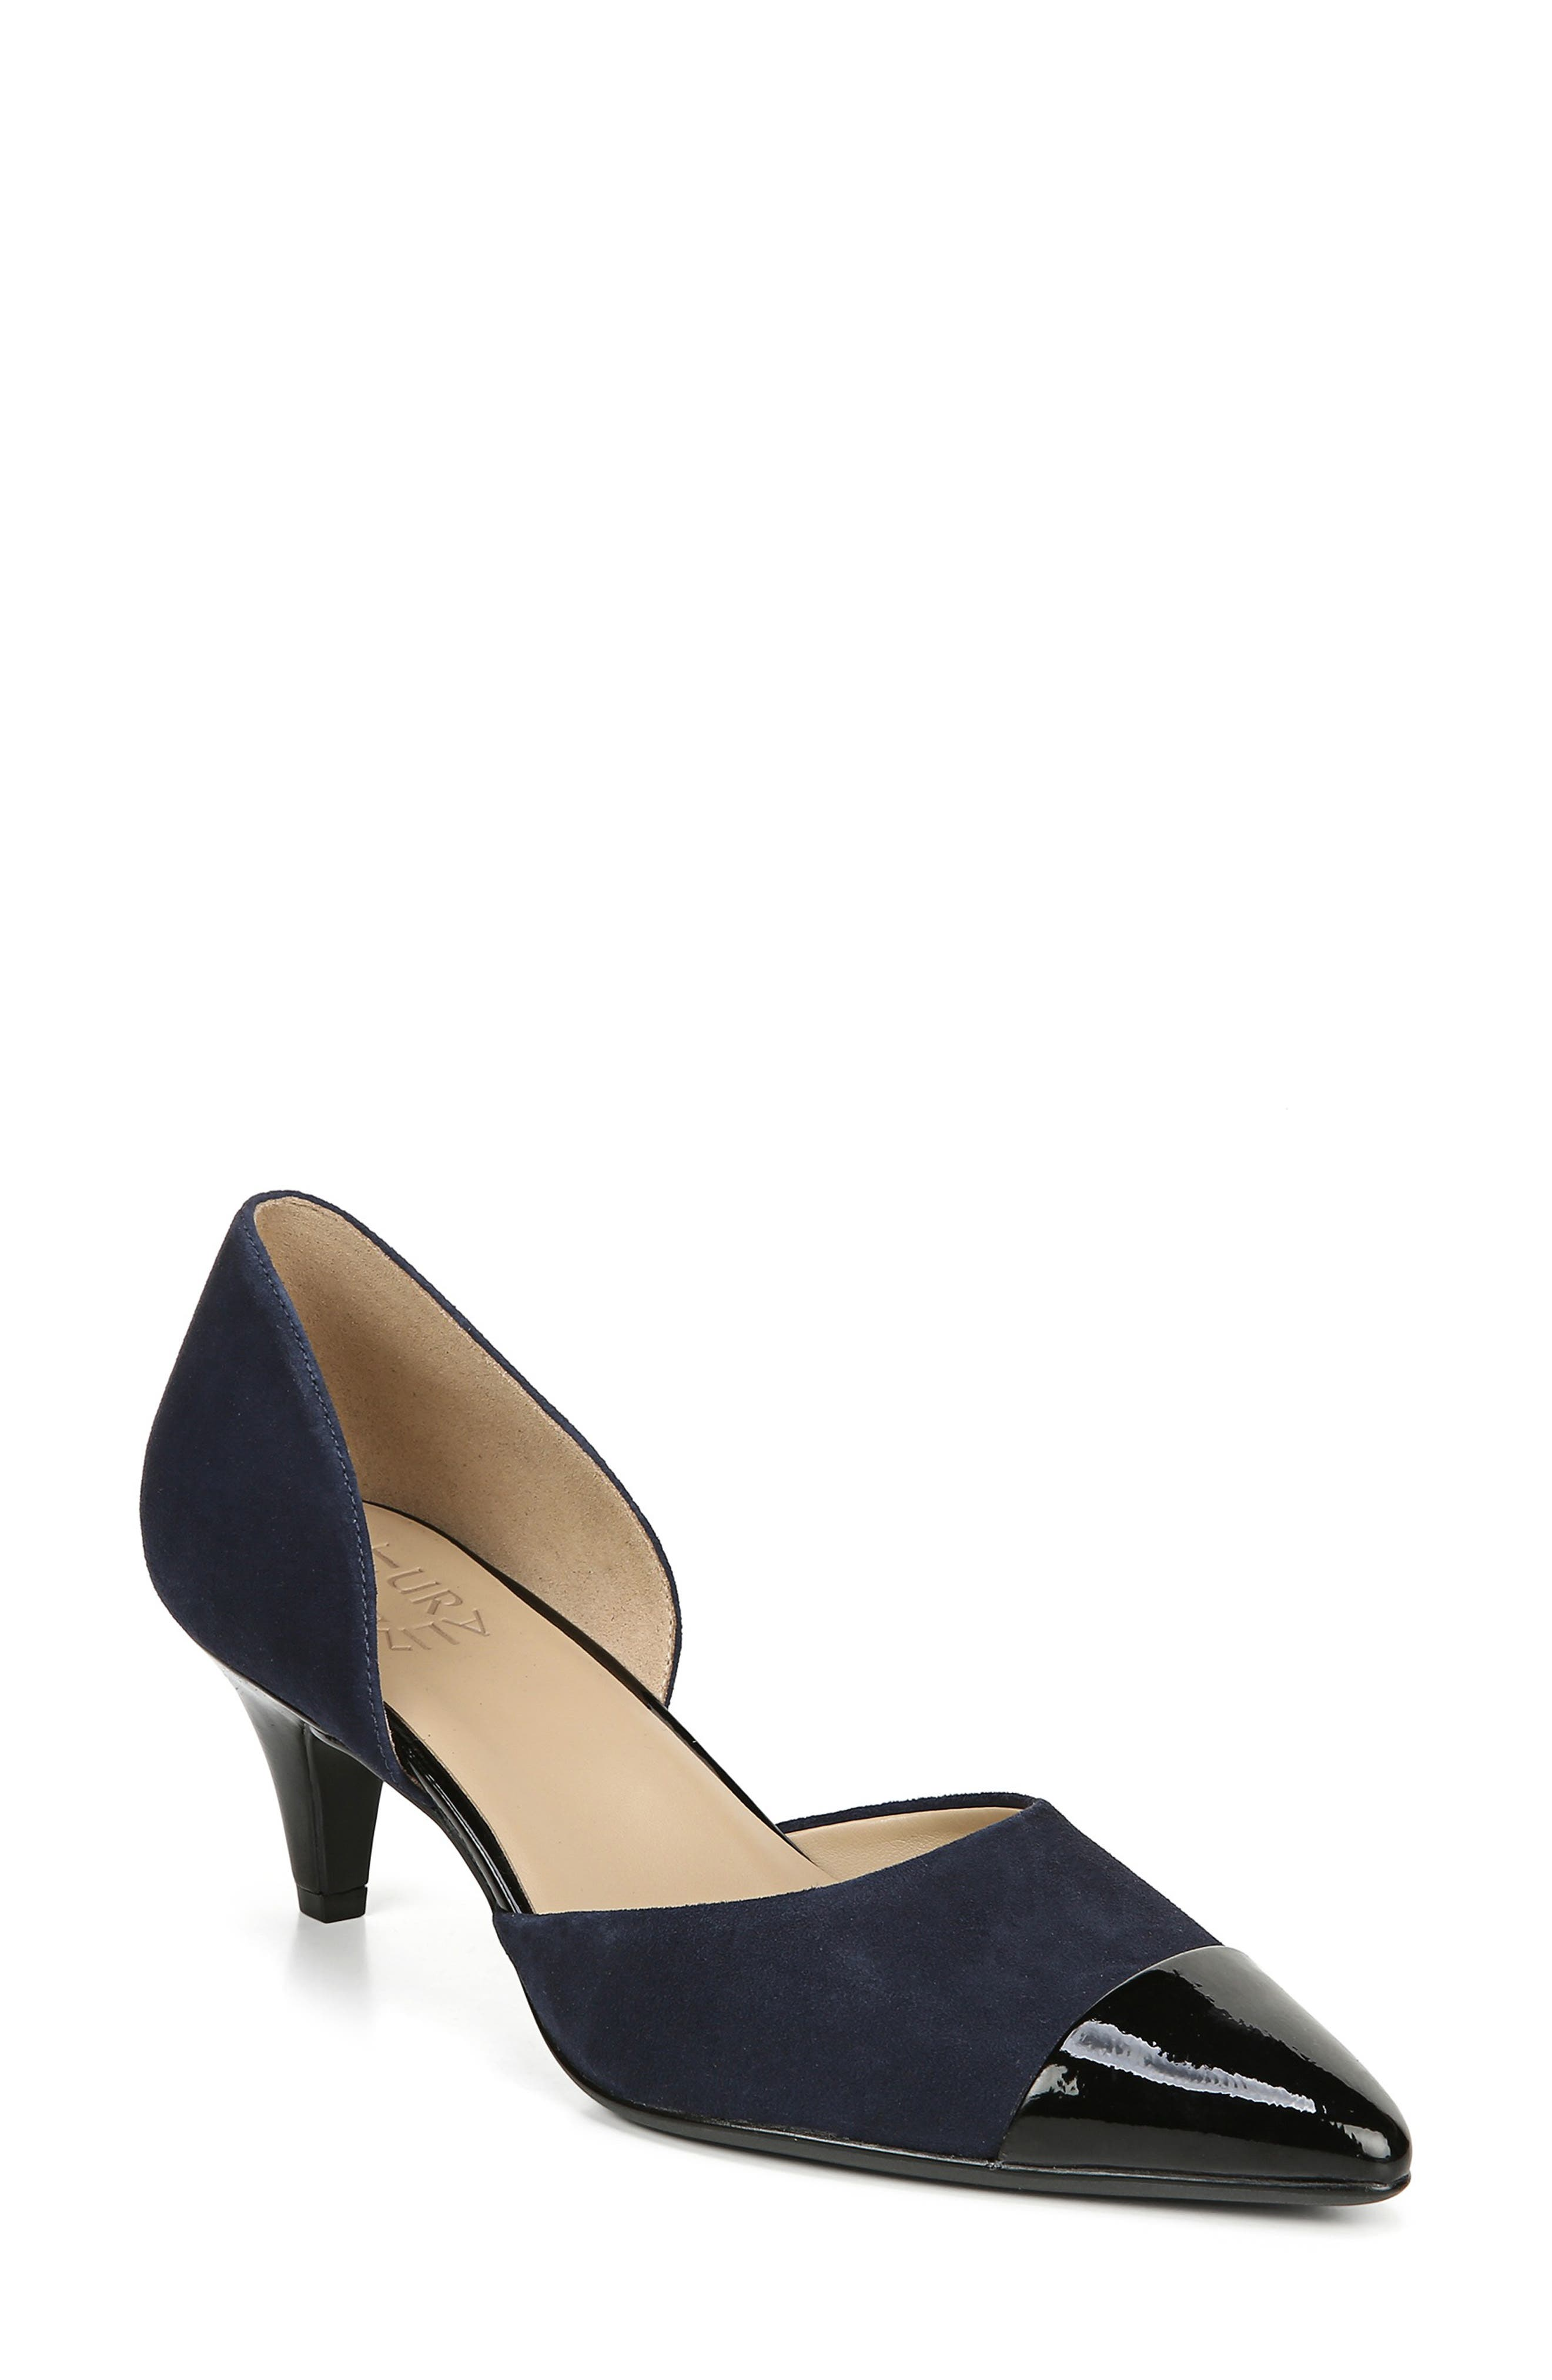 Naturalizer Barb Leather Pump, Blue